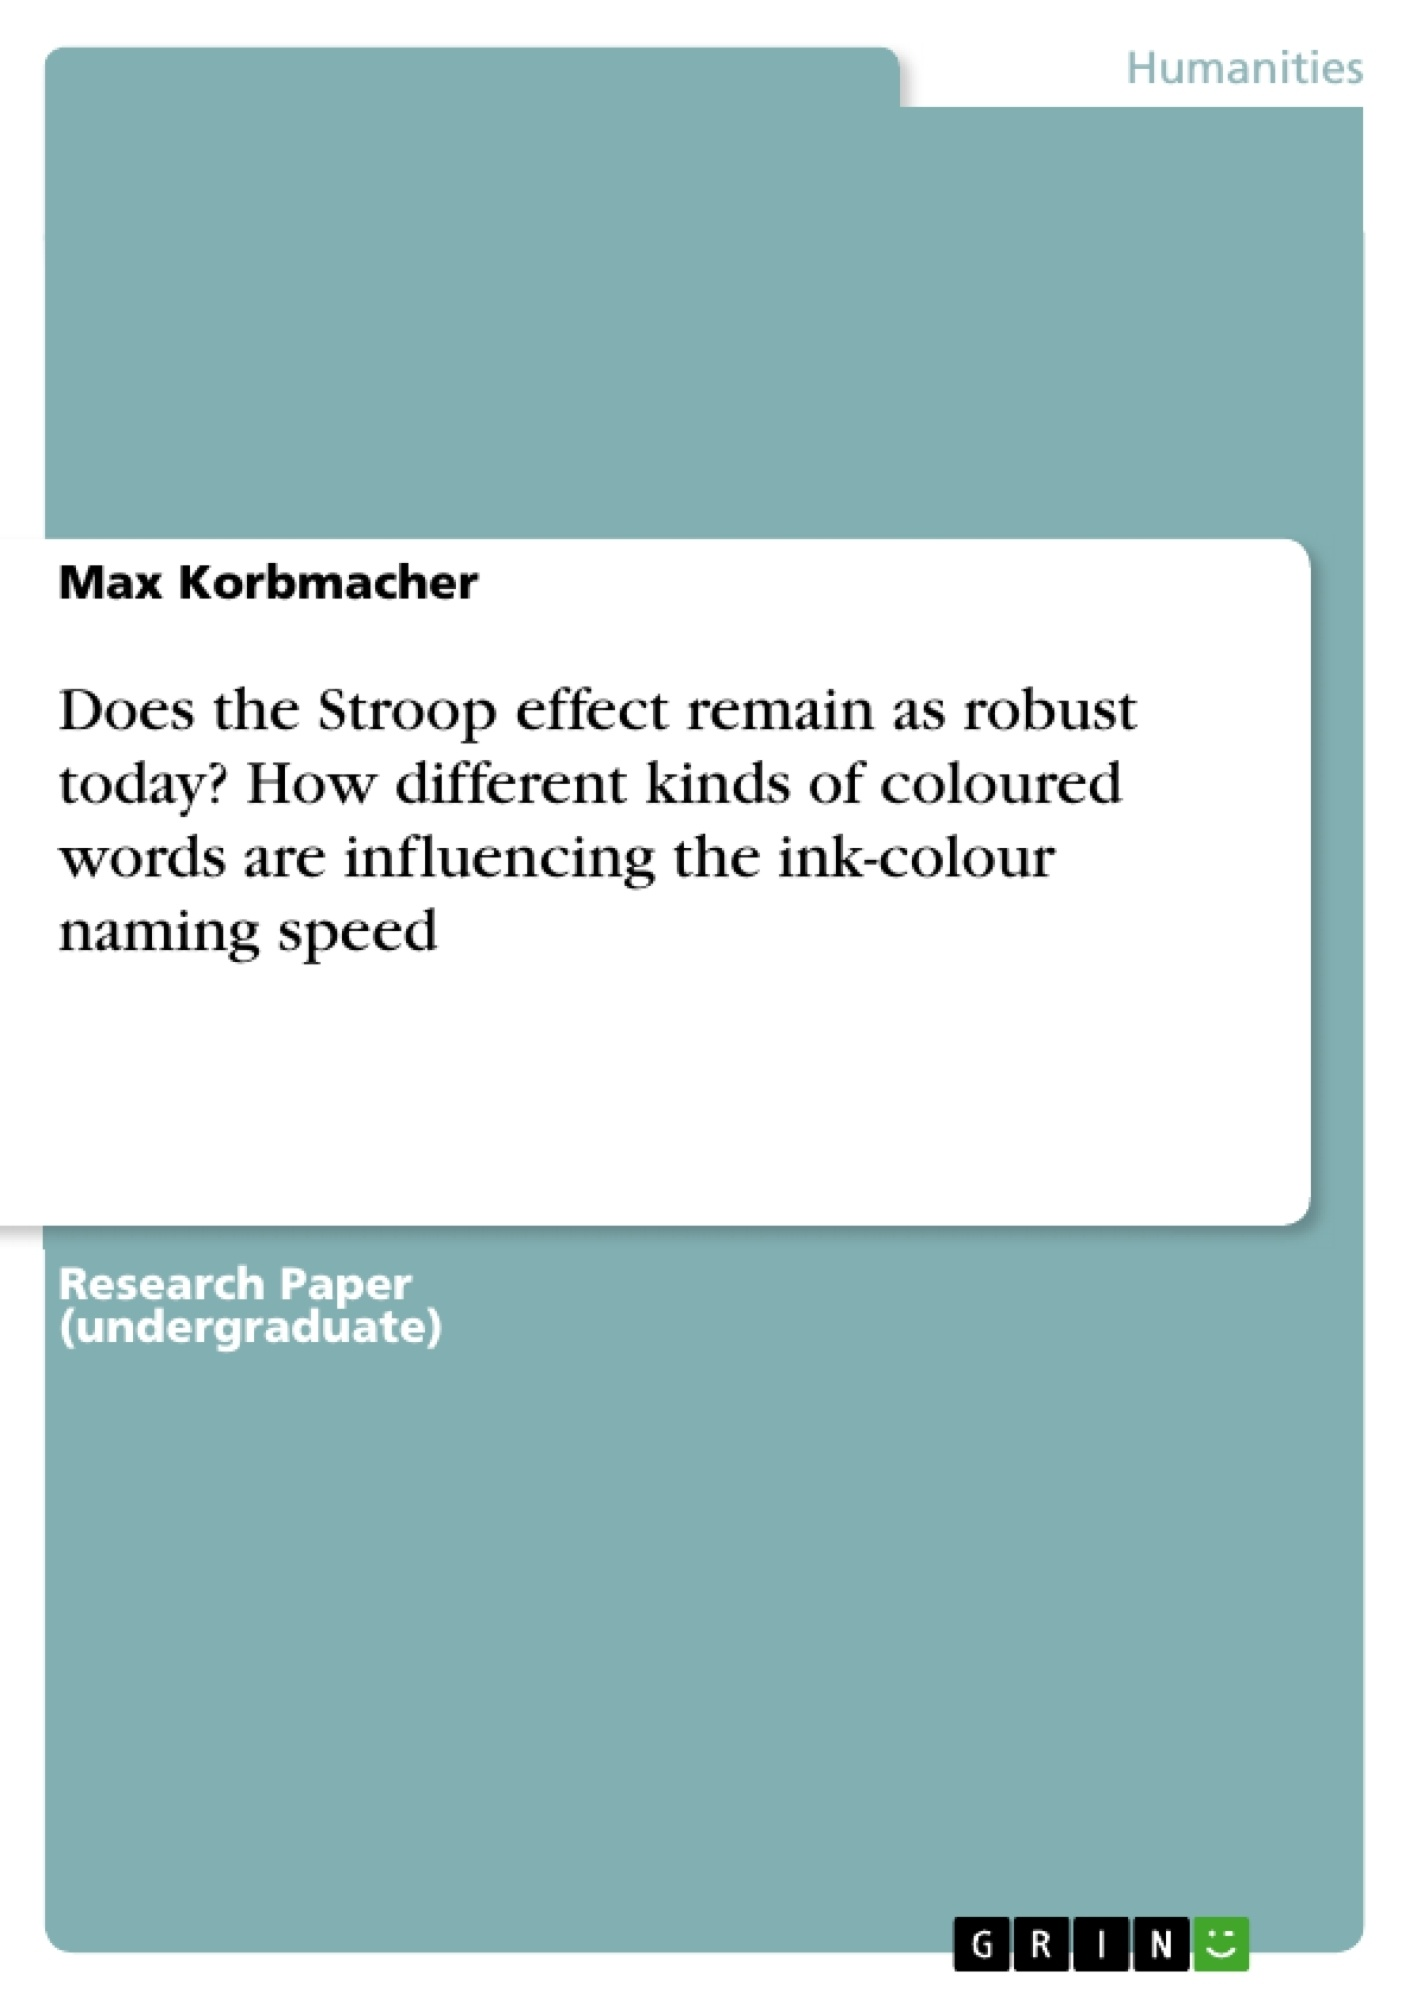 Title: Does the Stroop effect remain as robust today? How different kinds of coloured words are influencing the ink-colour naming speed